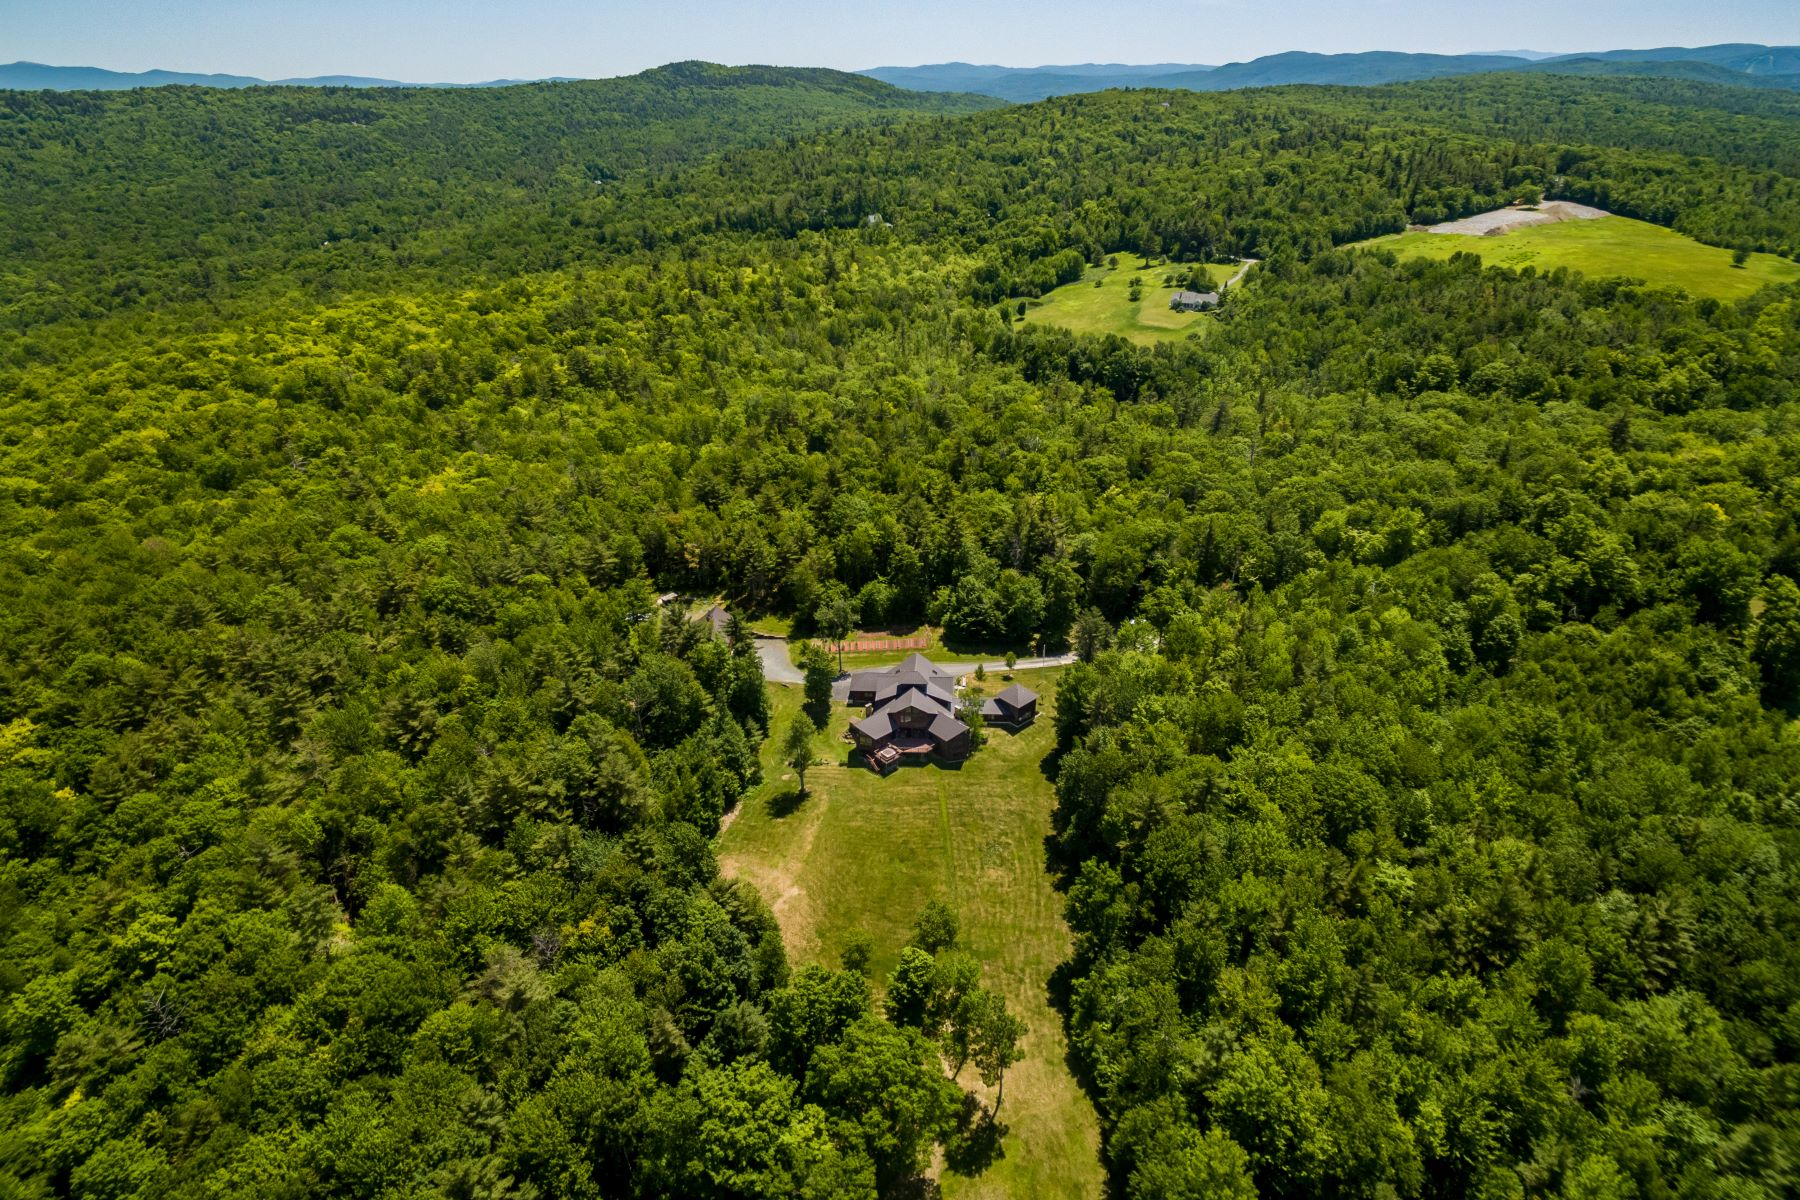 Single Family Home for Sale at 56 King Road, Hanover 56 King Rd Hanover, New Hampshire 03755 United States